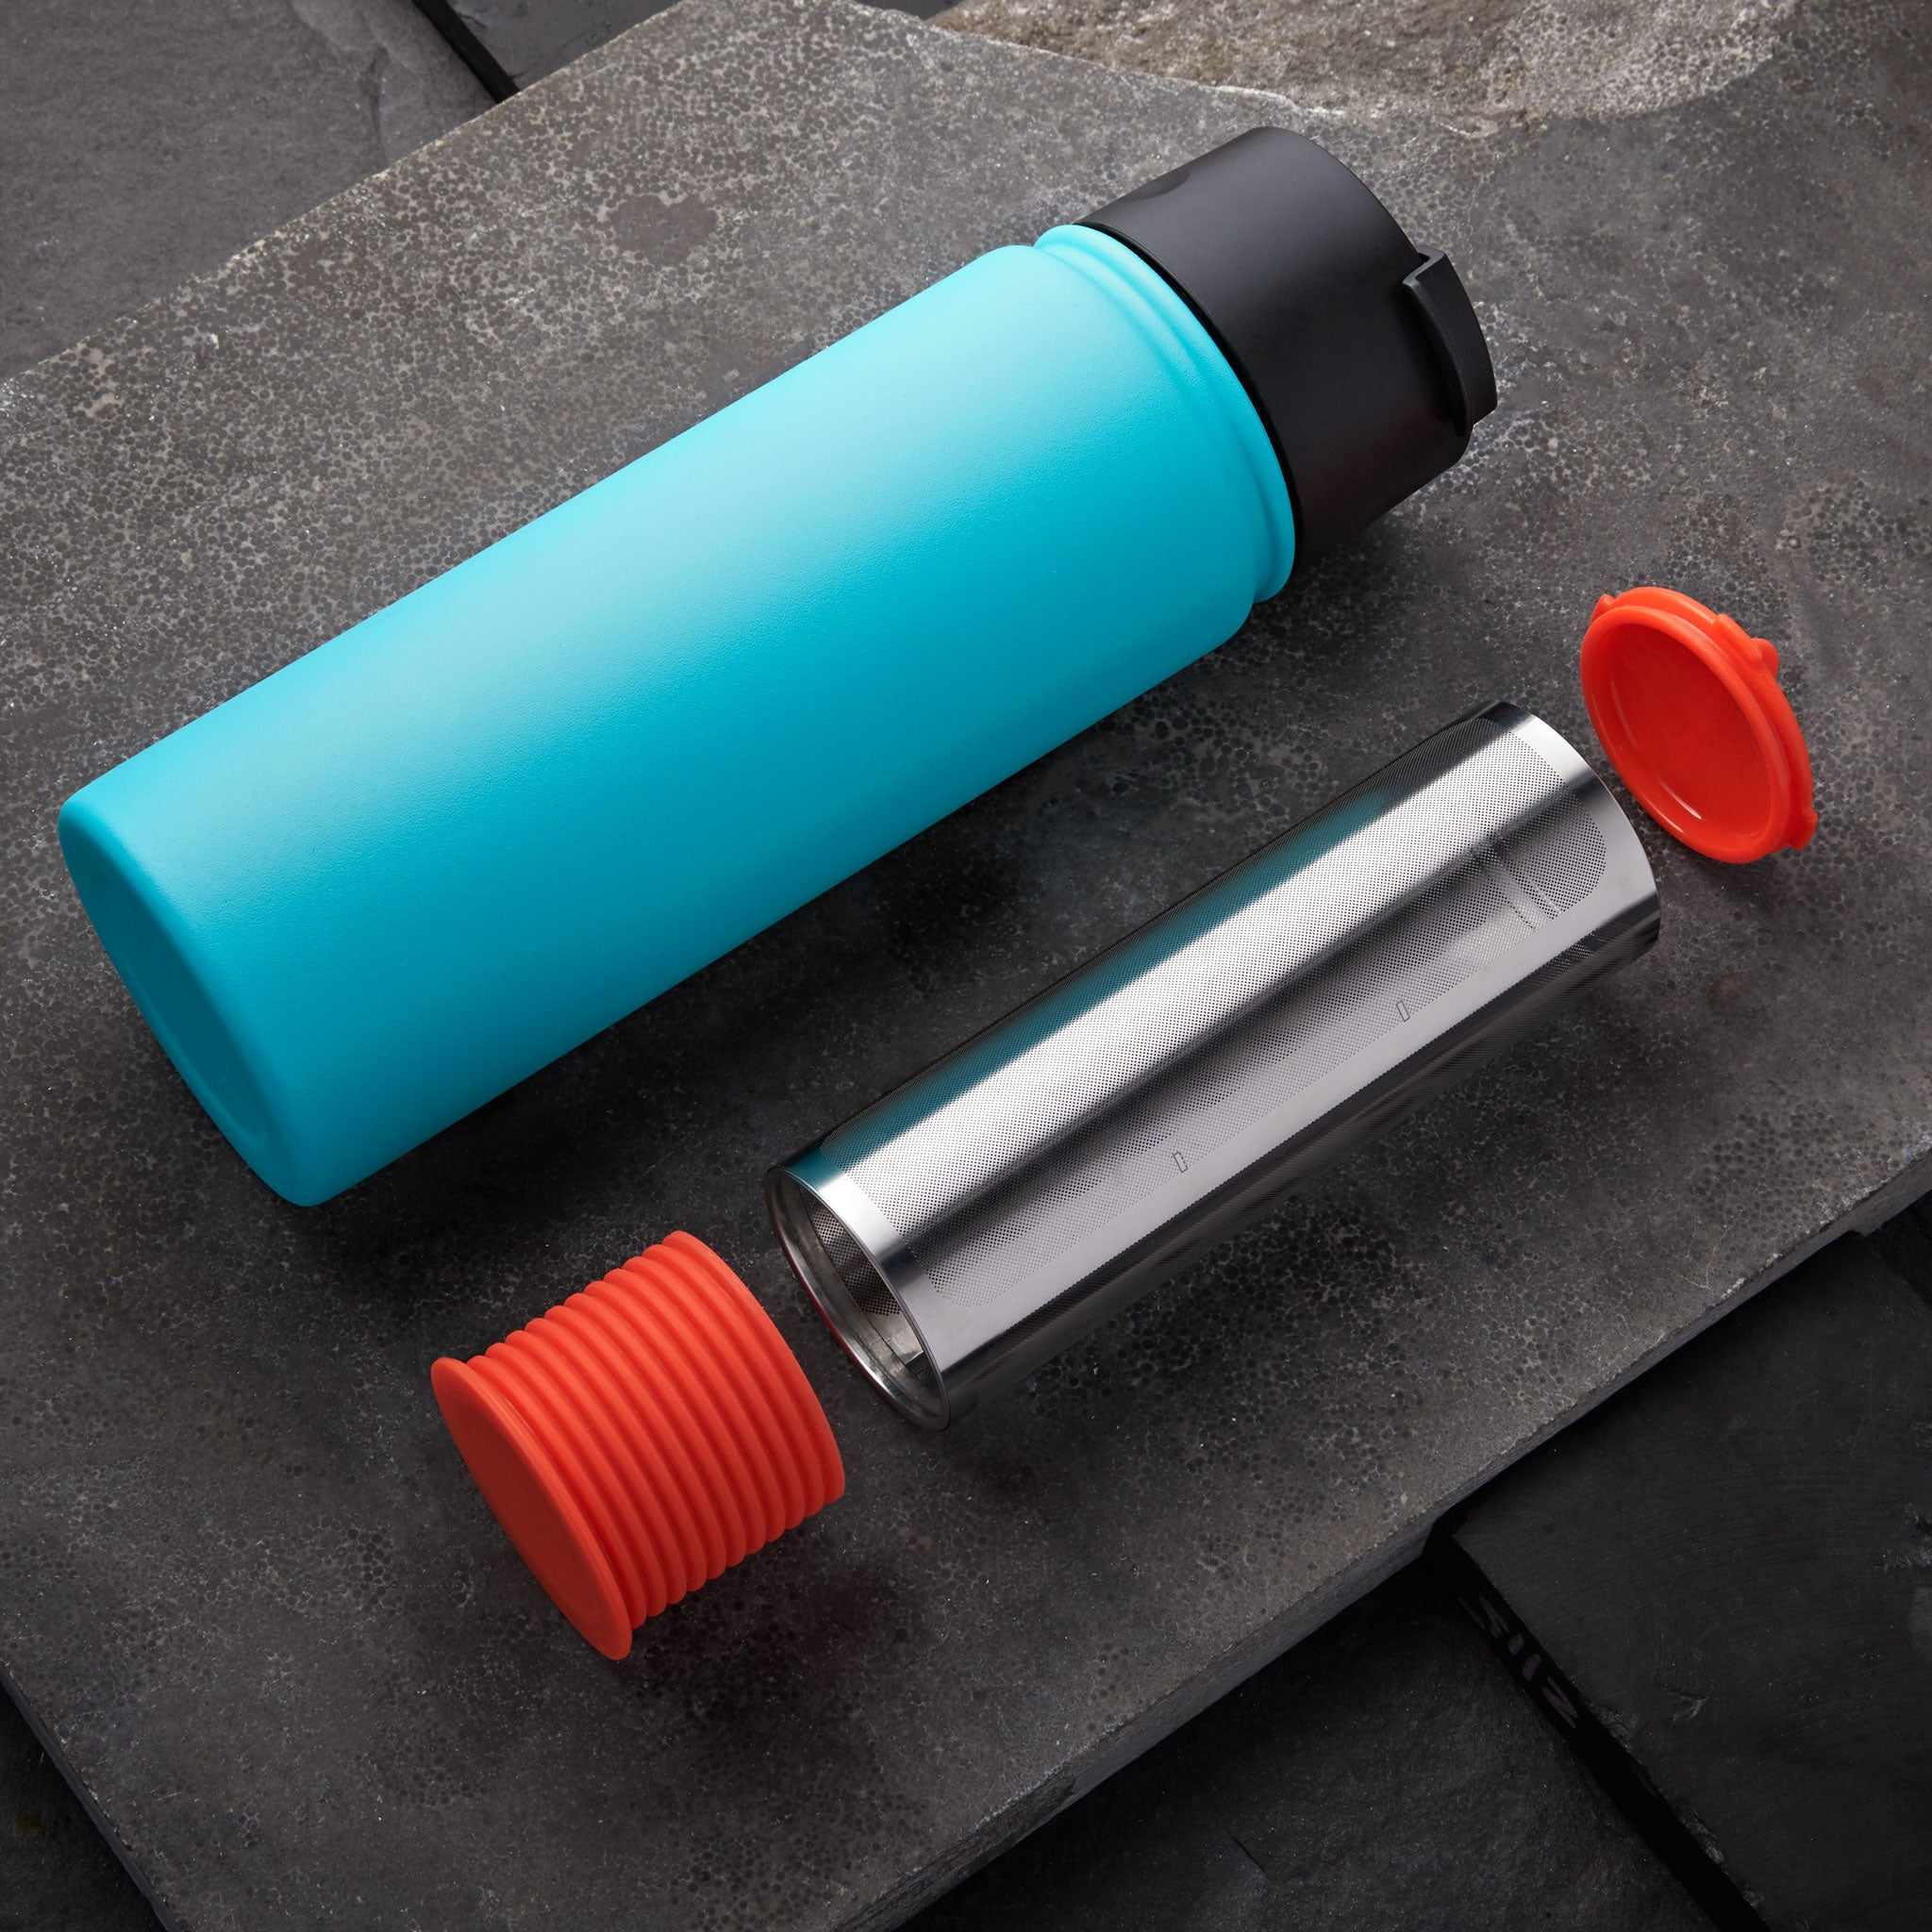 Rumble Go cold brew coffee filter with orangey-red cap and base next to one of many compatible water bottles